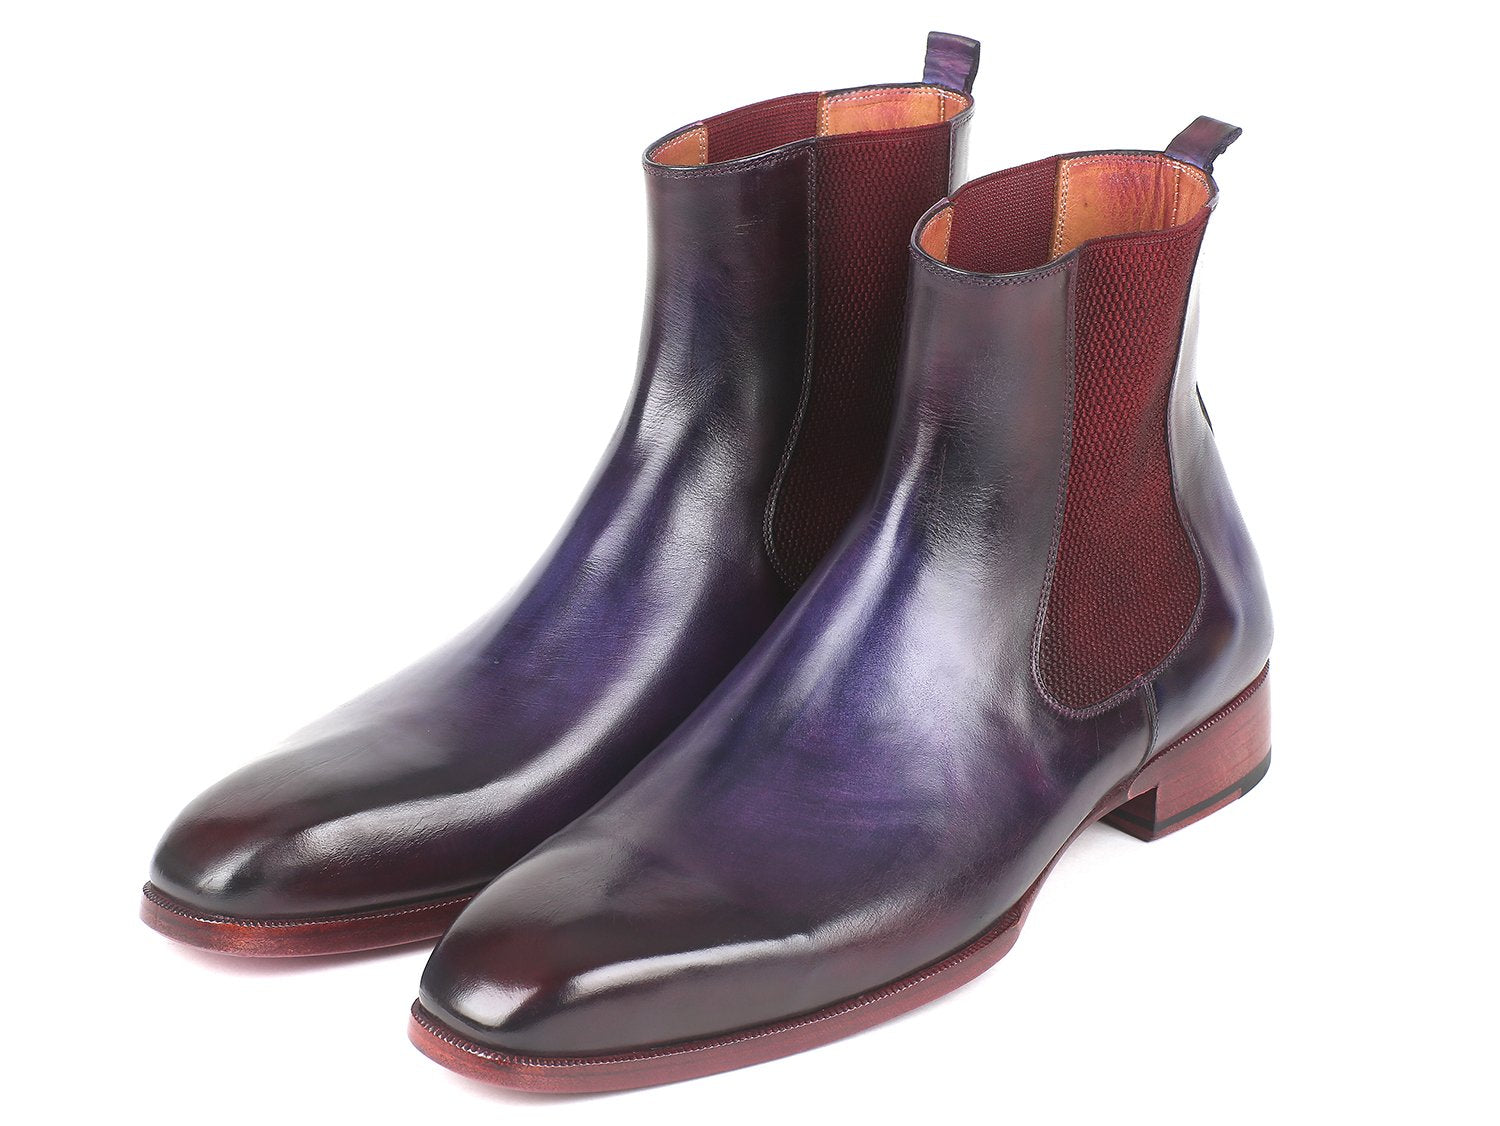 Paul Parkman Navy & Purple Chelsea Boots by PAUL PARKMAN on OOSTOR.com